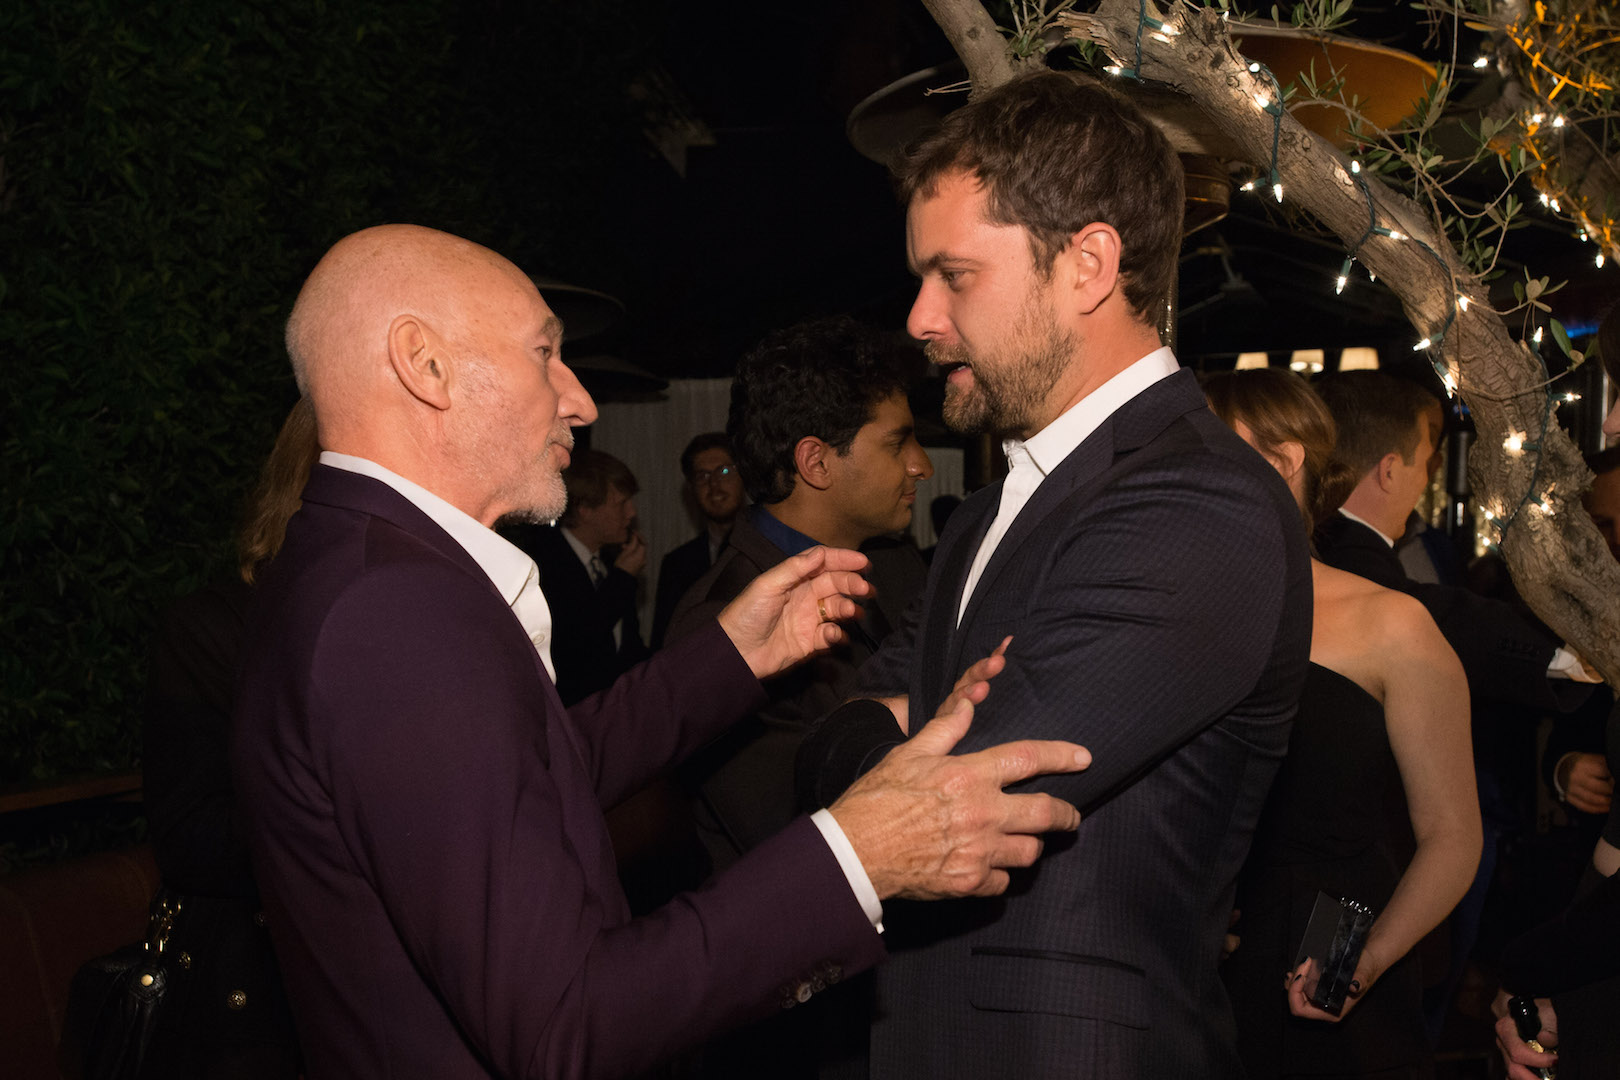 Patrick Stewart and Joshua Jackson attend a party for the announcement of Corinne Foxx as Miss Golden Globe 2016 for the 73rd Annual Golden Globe Awards set to air live on NBC on January 10, 2016.  President Lorenzo Soria made the announcement on November 17, 2015 from Ysabel Restaurant in West Hollywood.